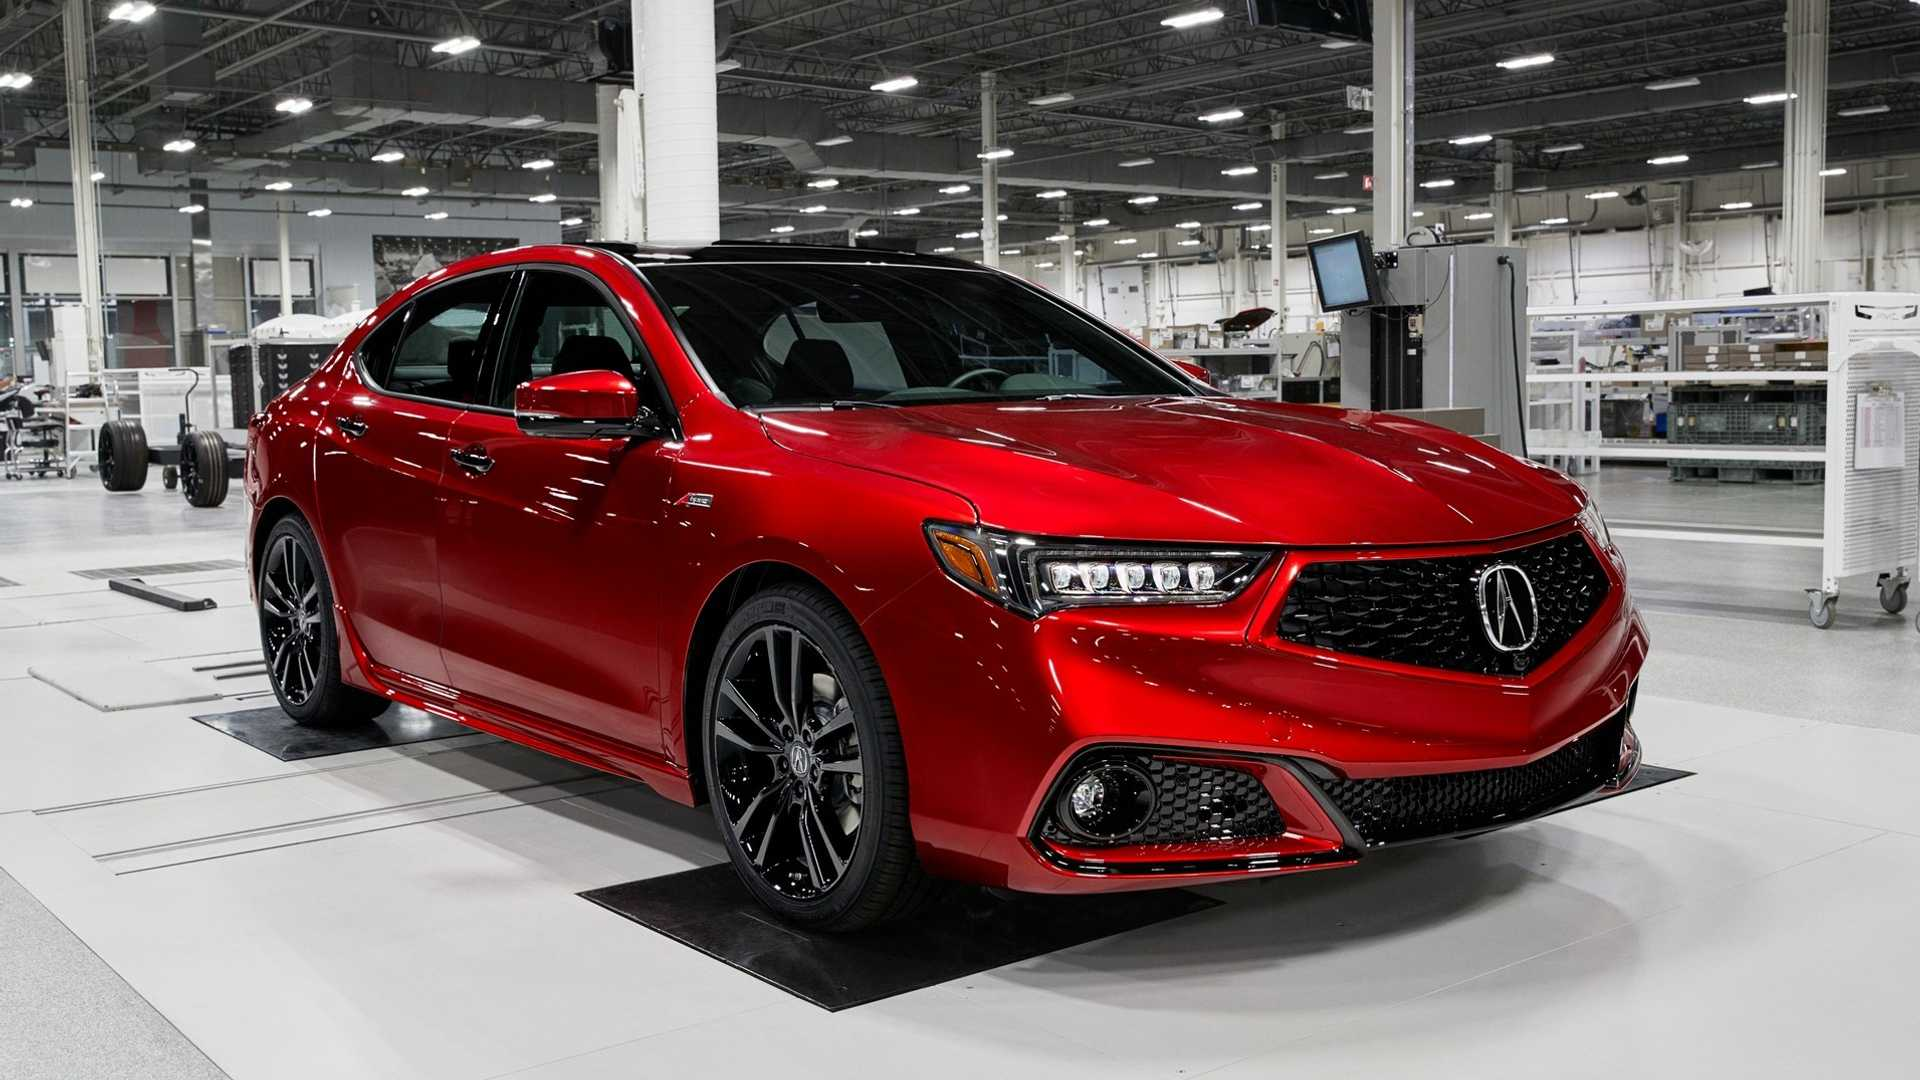 2020-acura-tlx-pmc-edition (1).jpg